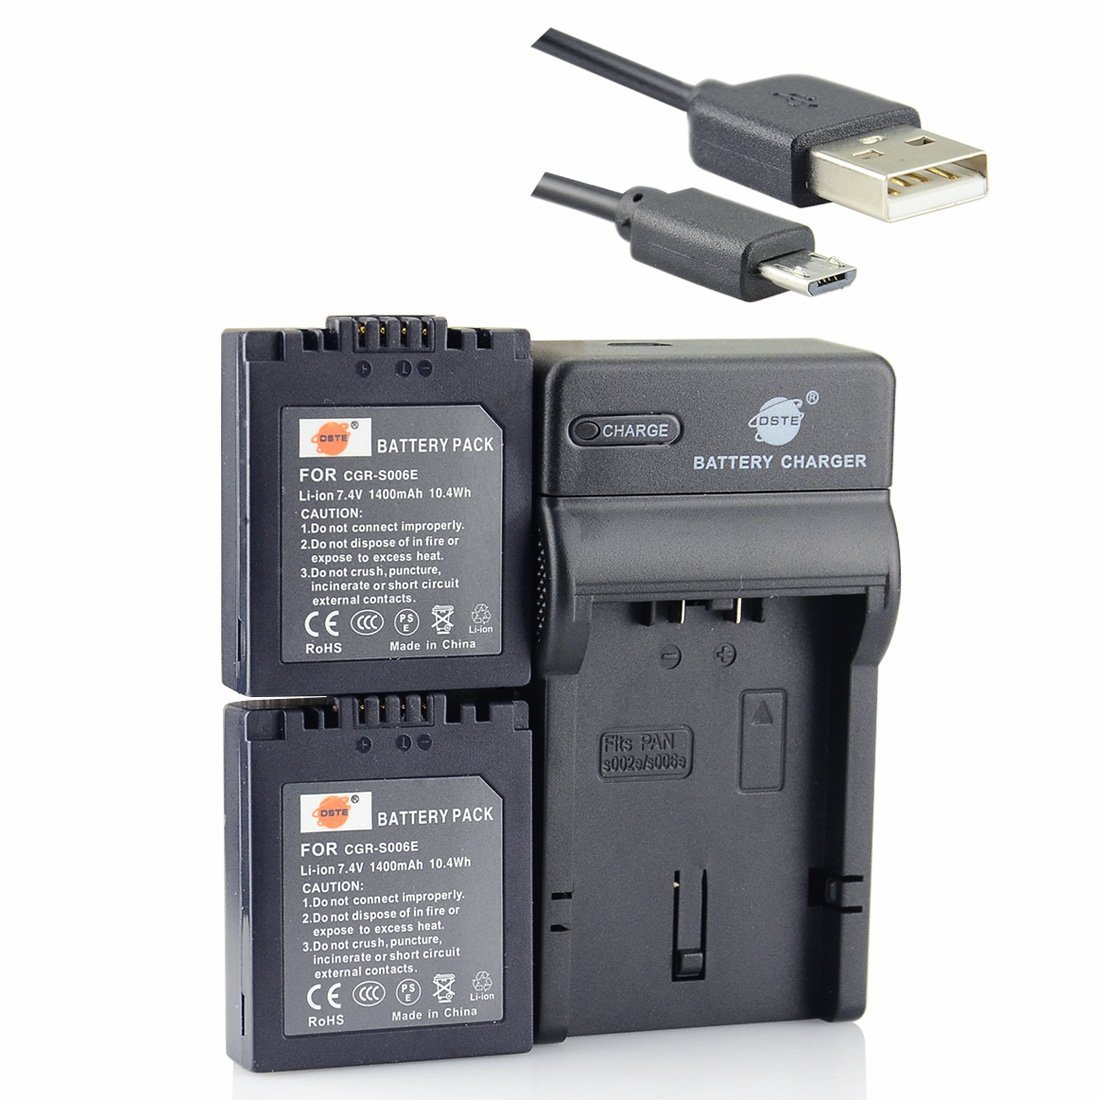 DSTE CGR-S006E Li-ion Battery (2-Pack) and Micro USB Charger Suit for Panasonic CGR-S006, CGR-S006A1B, CGA-S006, DMW-BMA7